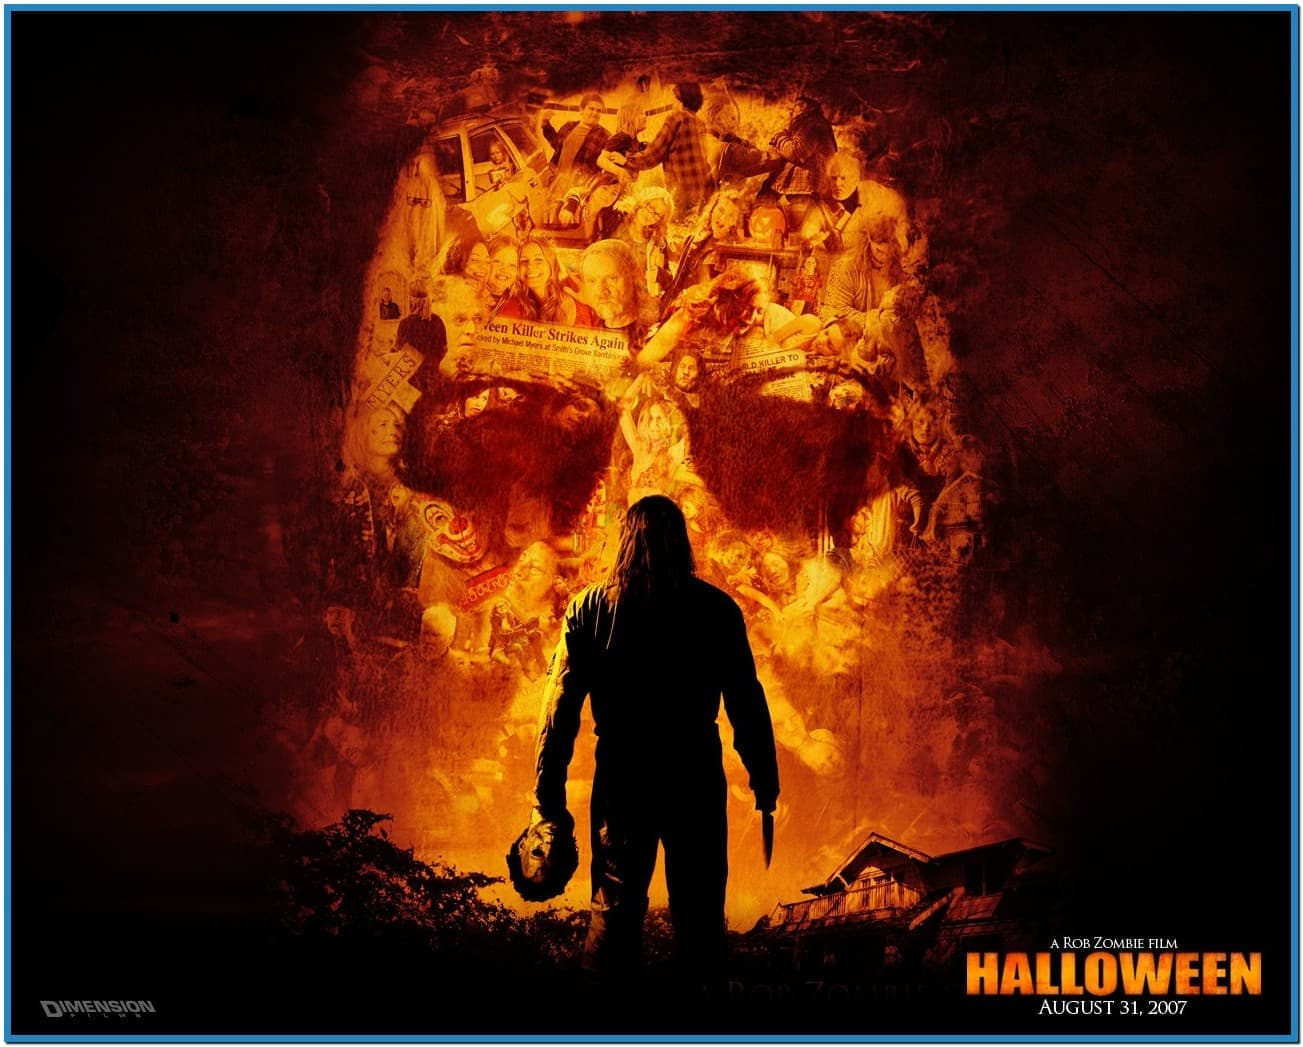 Halloween movie wallpaper screensavers   Download 1303x1047